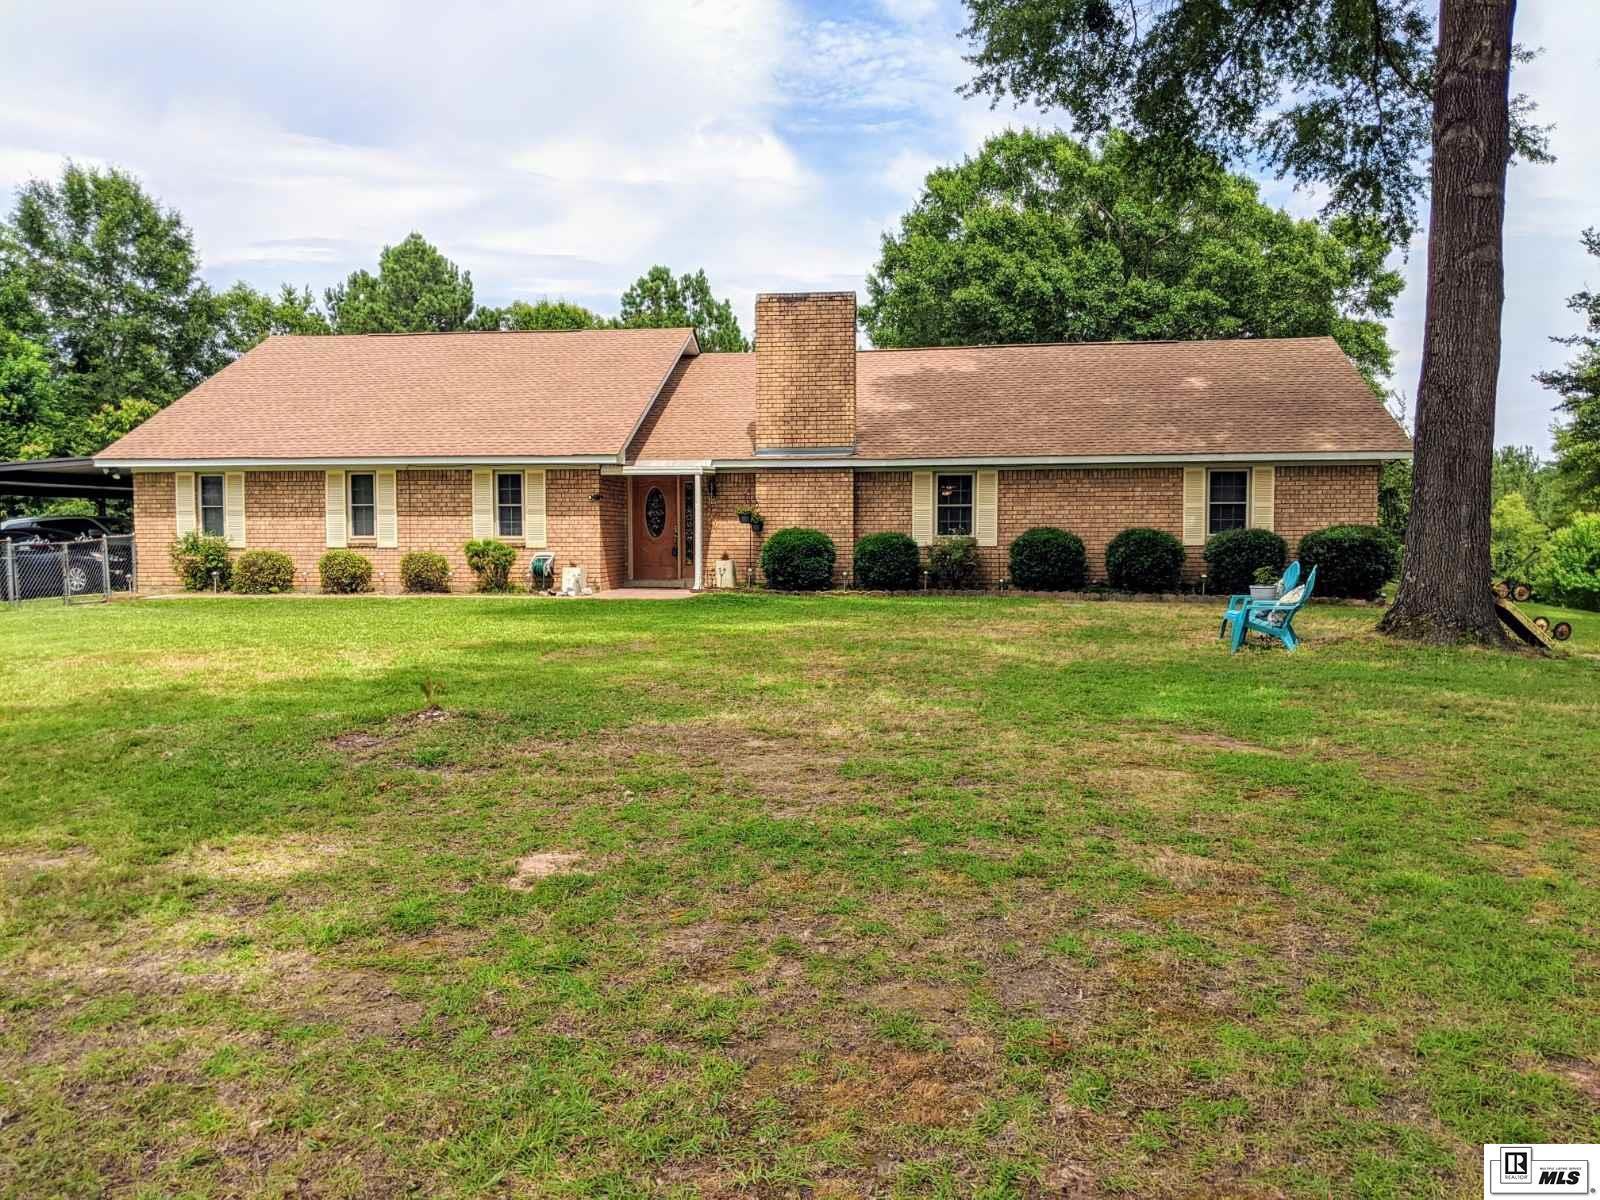 342 JIM MIZE ROAD, 152 WM-S of I-20  Westlakes - Ca